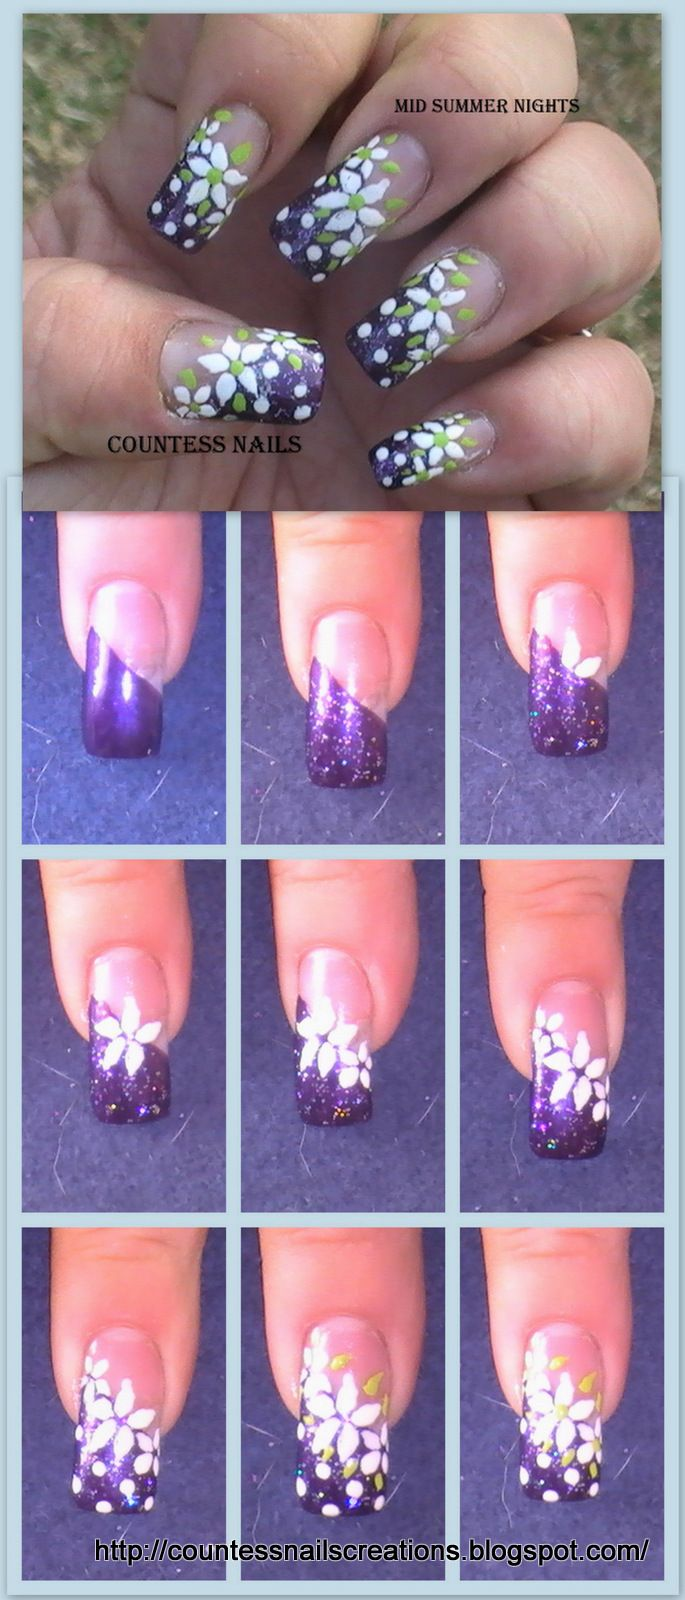 Pattern nail art designs fancy nail art for prom simple nail art lines - Easy To Do Nail Art Step By Step Tutorial Summer Nights Floral